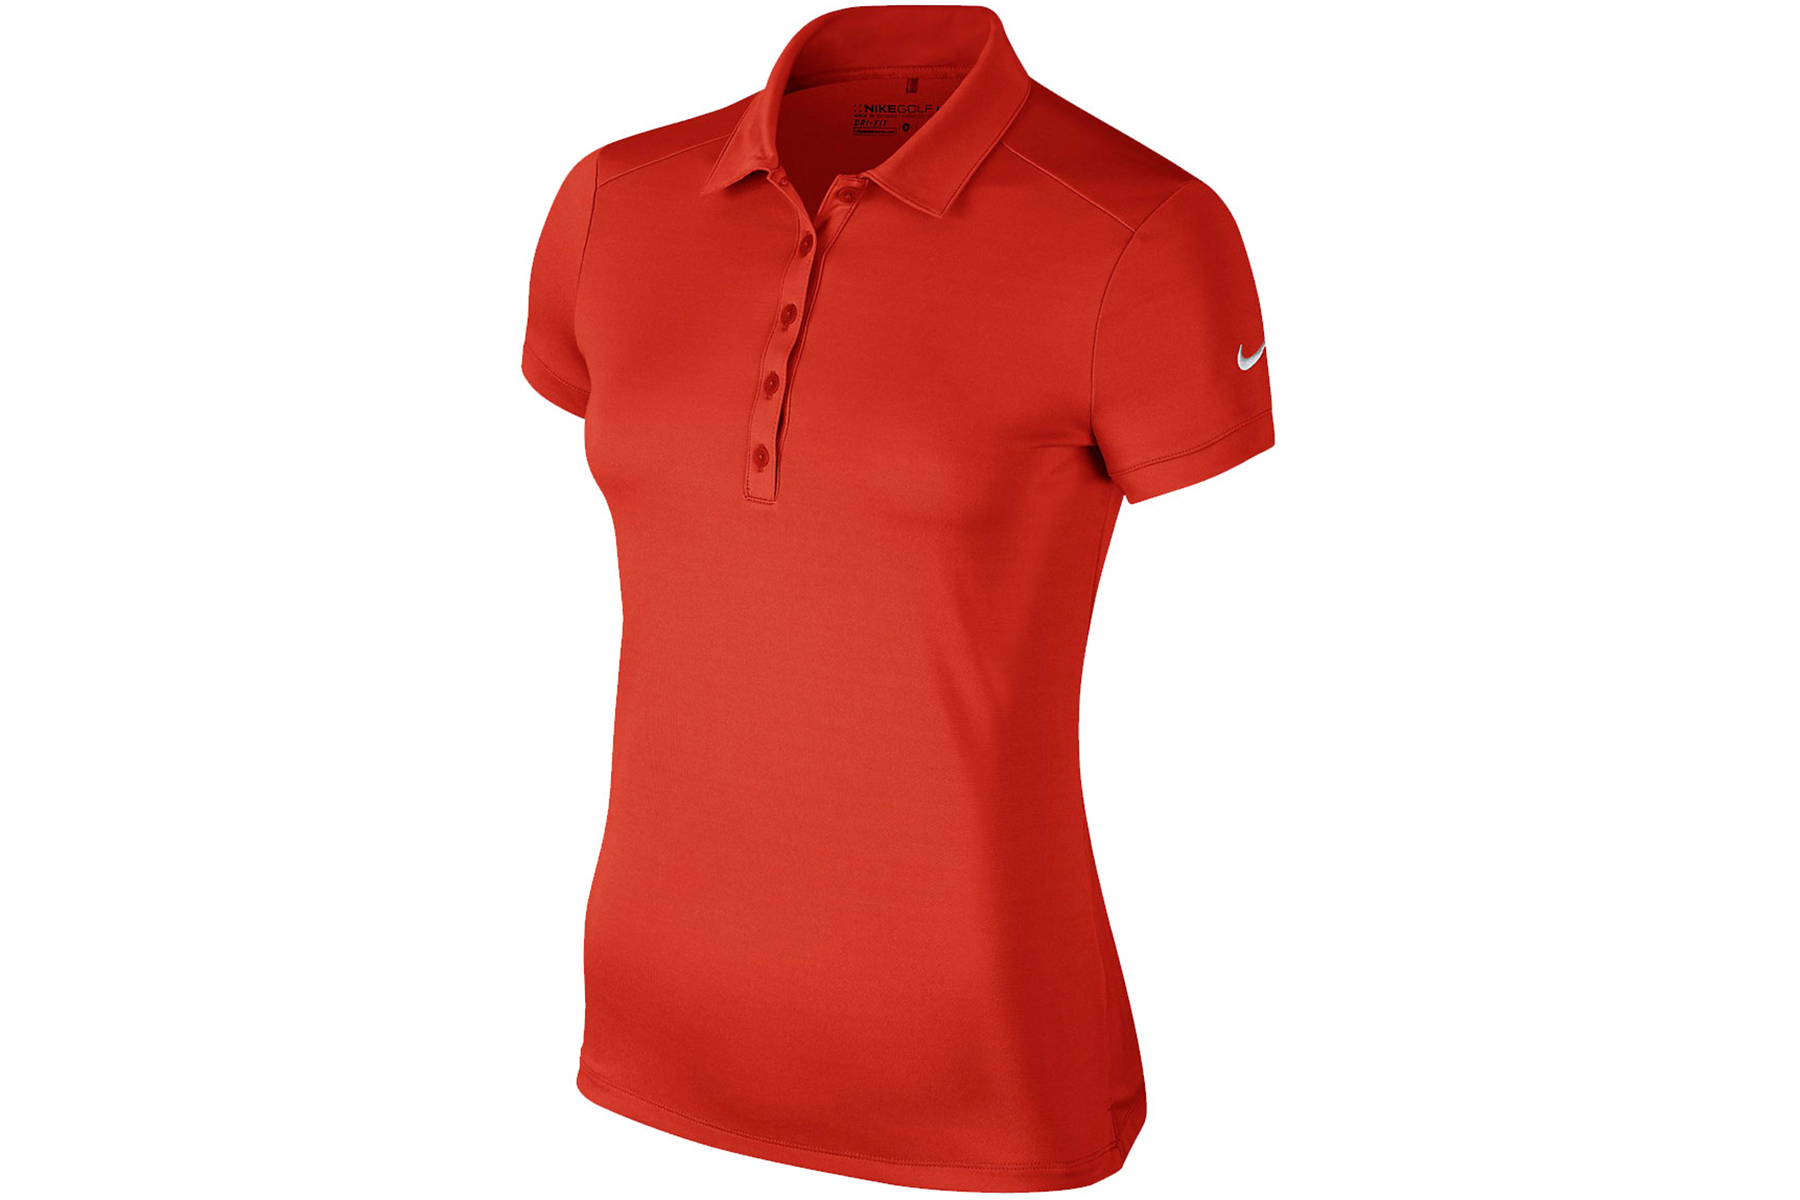 Nike golf victory solid ladies polo shirt from american golf for Nike womens golf shirts polo